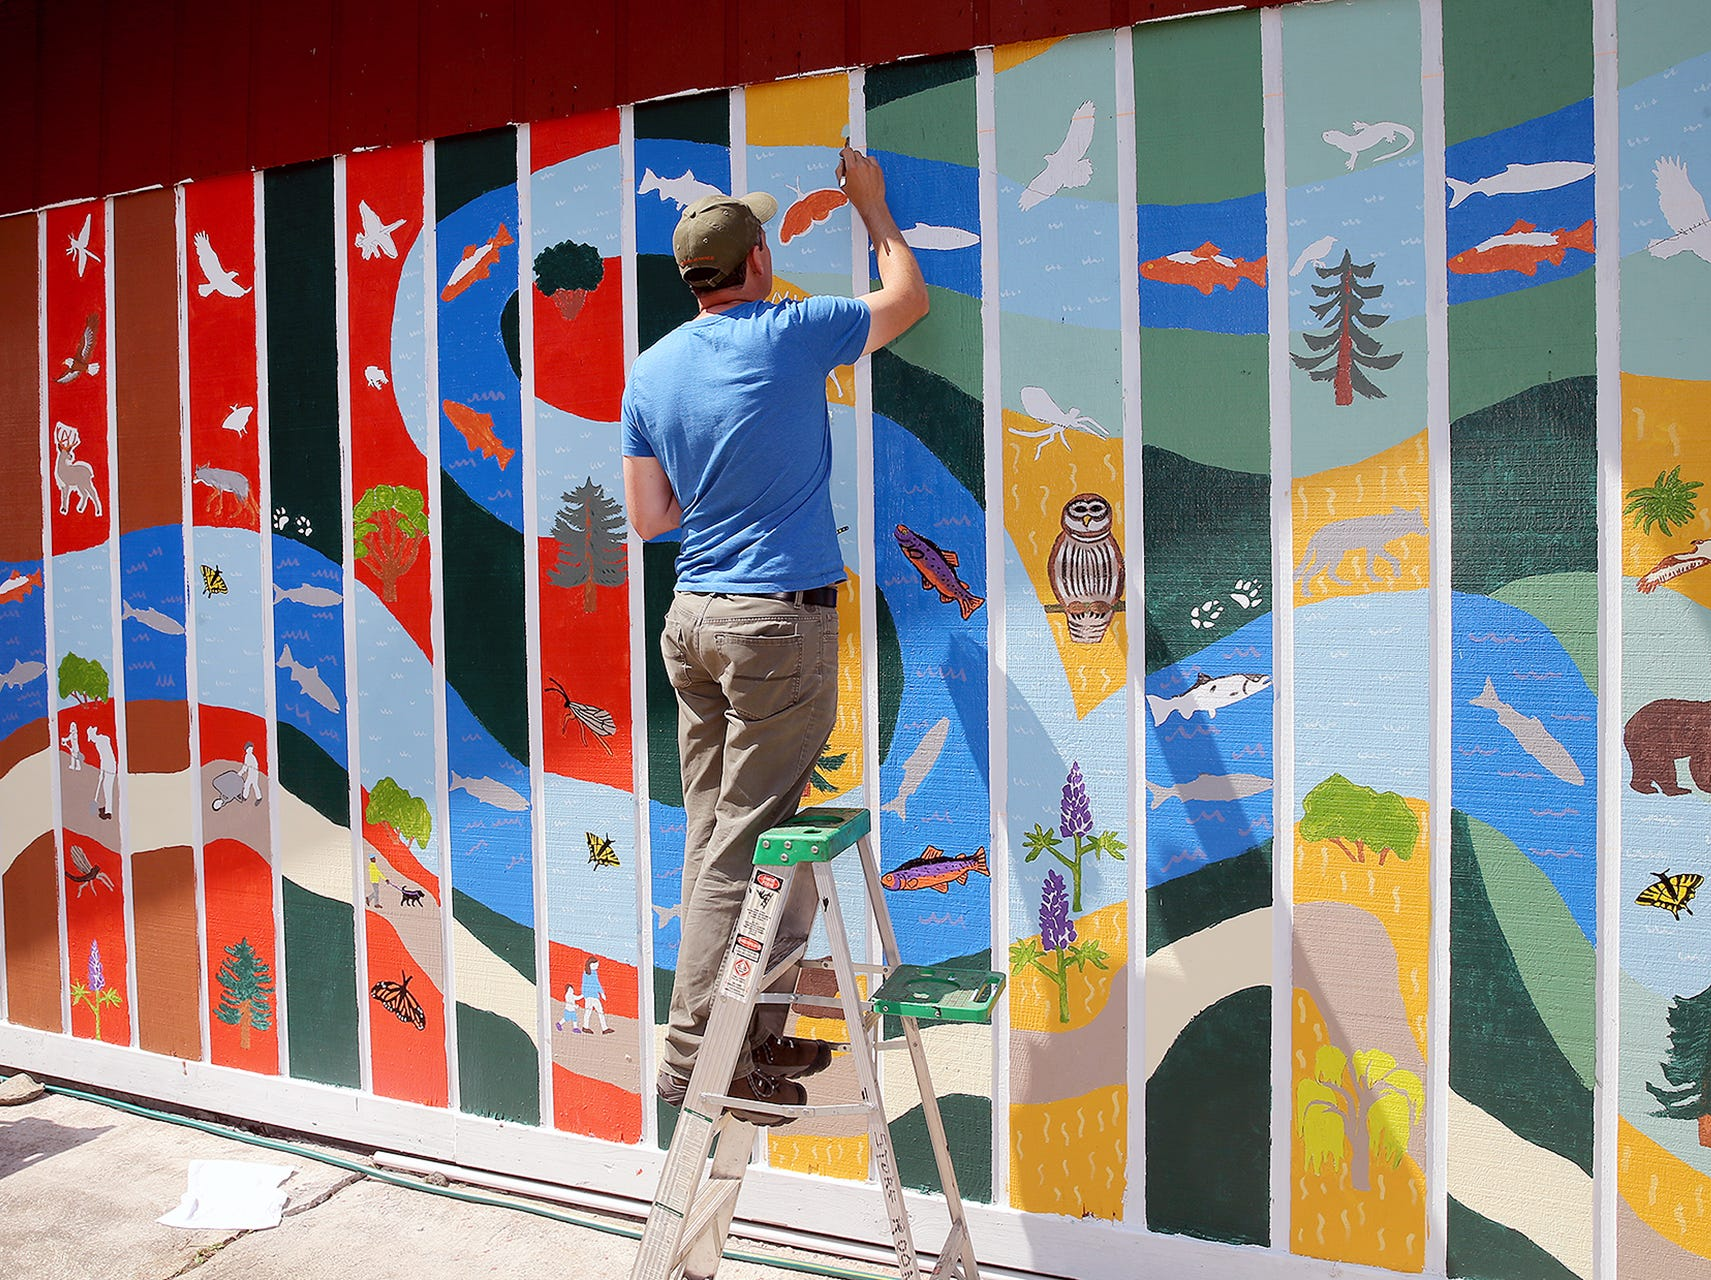 Mauro O' Neil of from the Kitsap County Storm Water Department paints on the nature mural on Wednesday August 8, 2018.